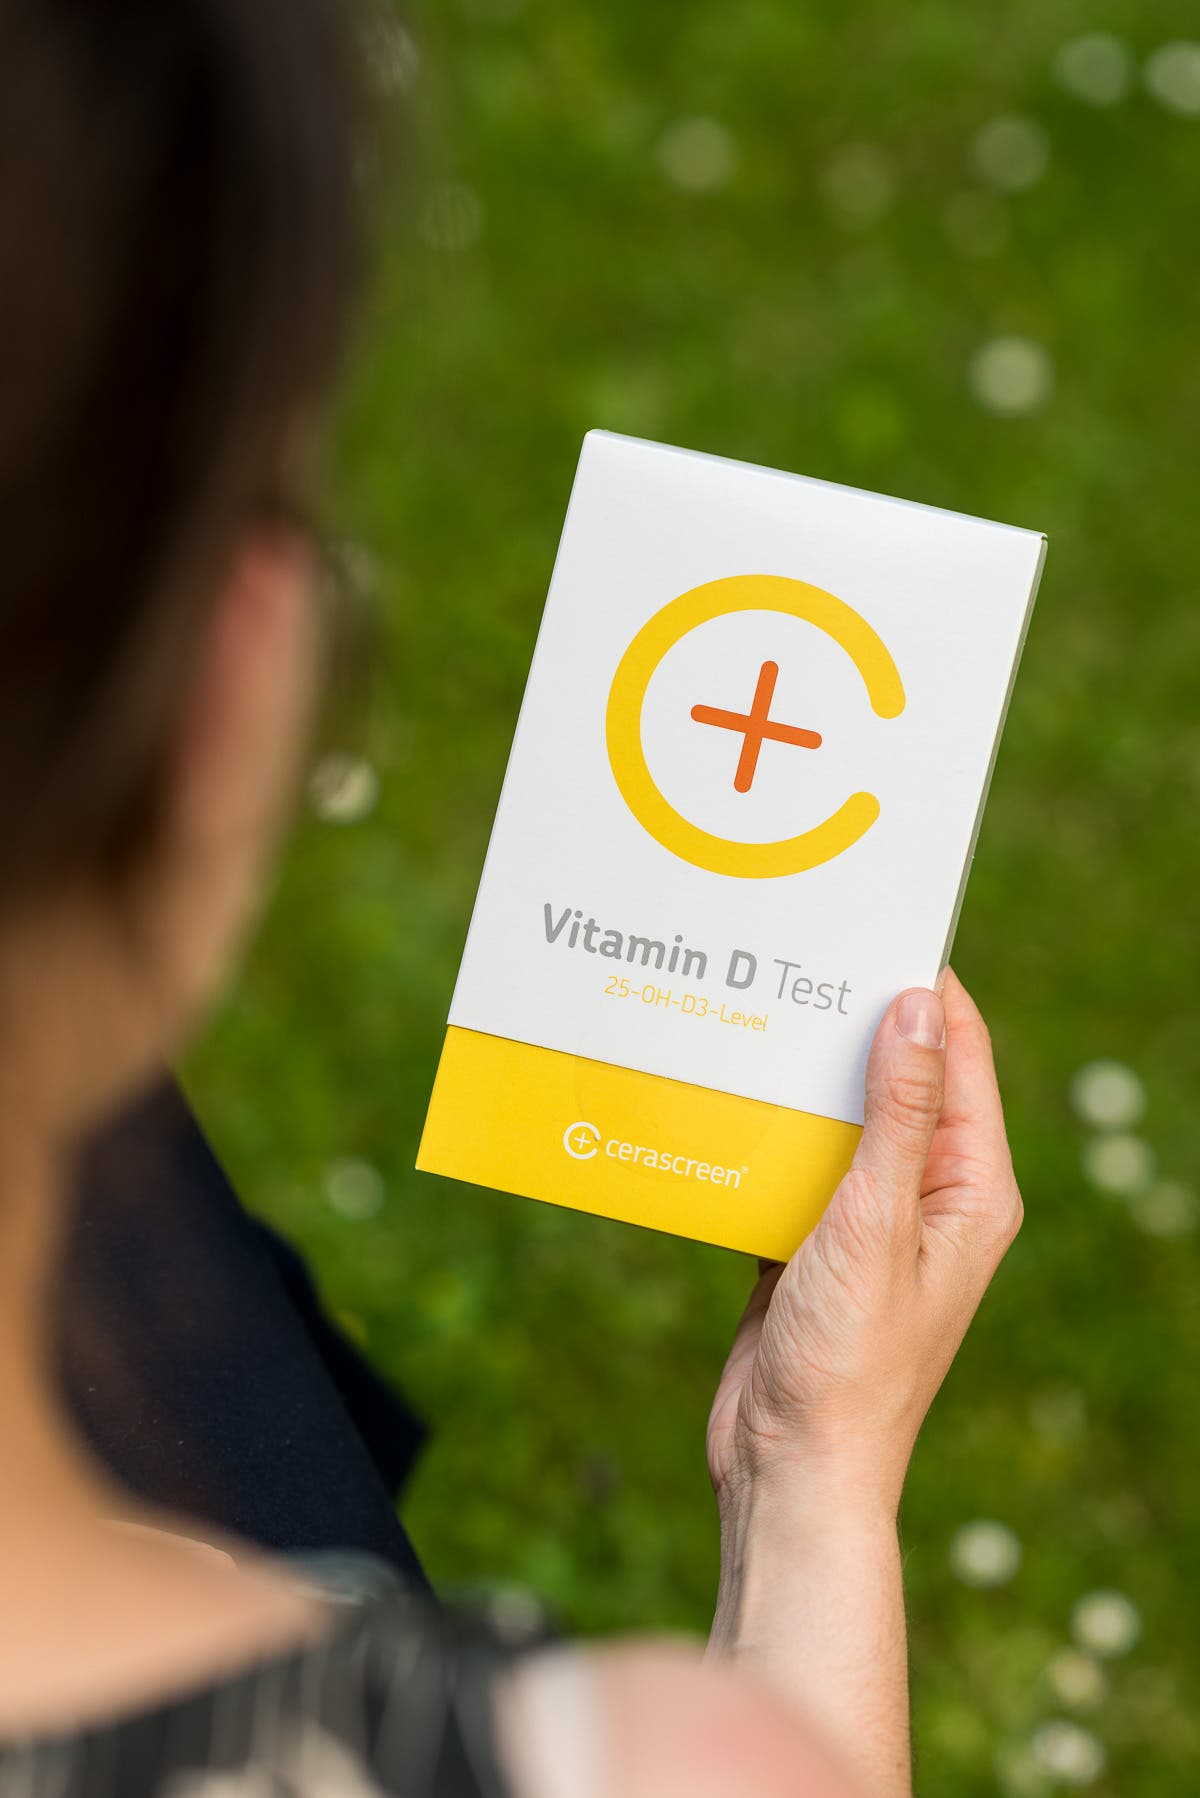 Person hält einen Vitamin D Test in der Hand.